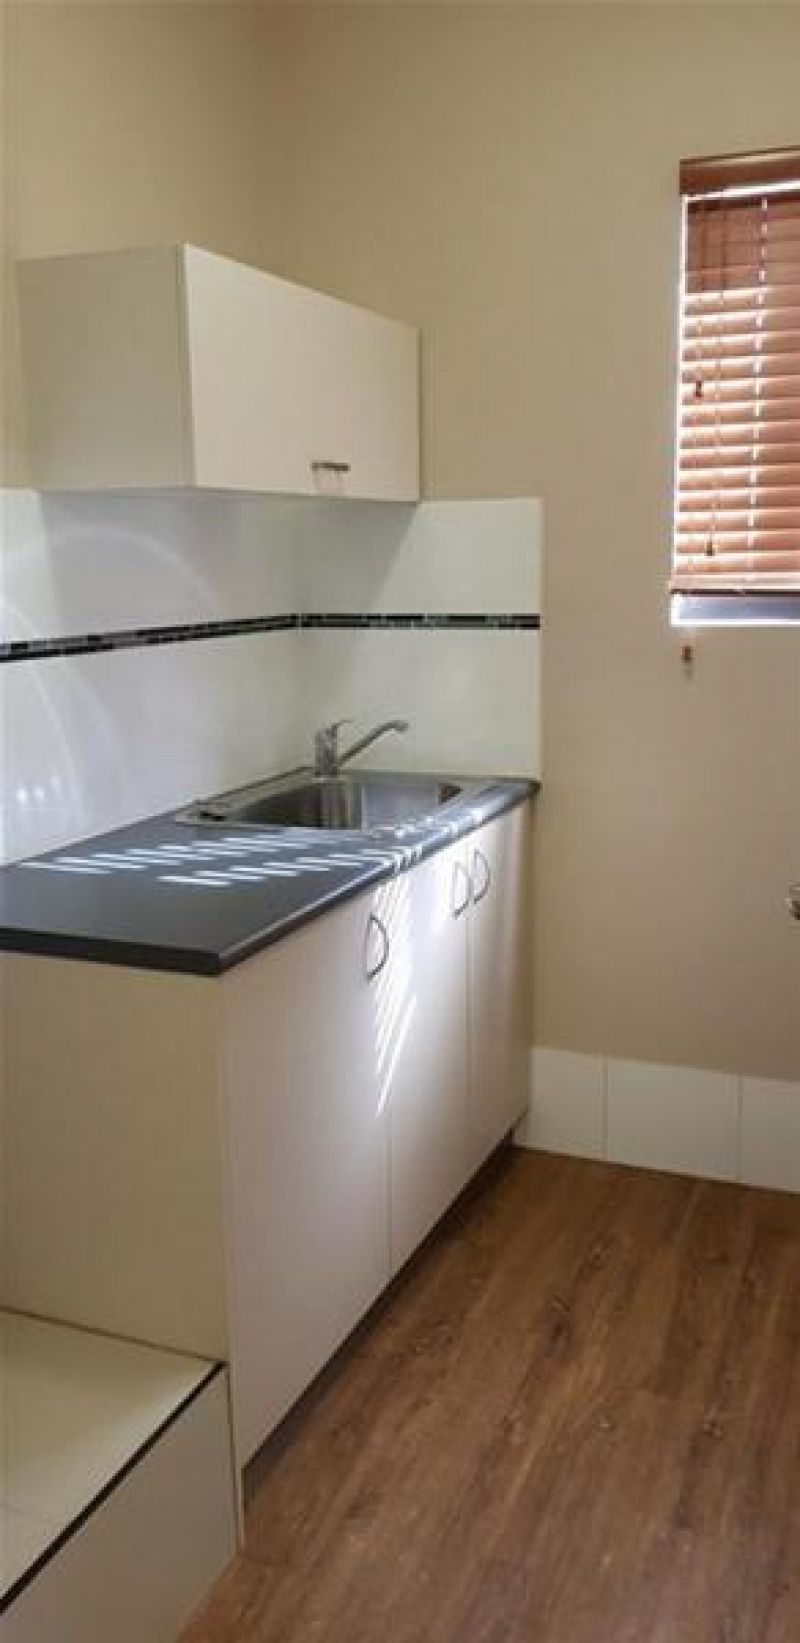 Premium Property - Awesome Value